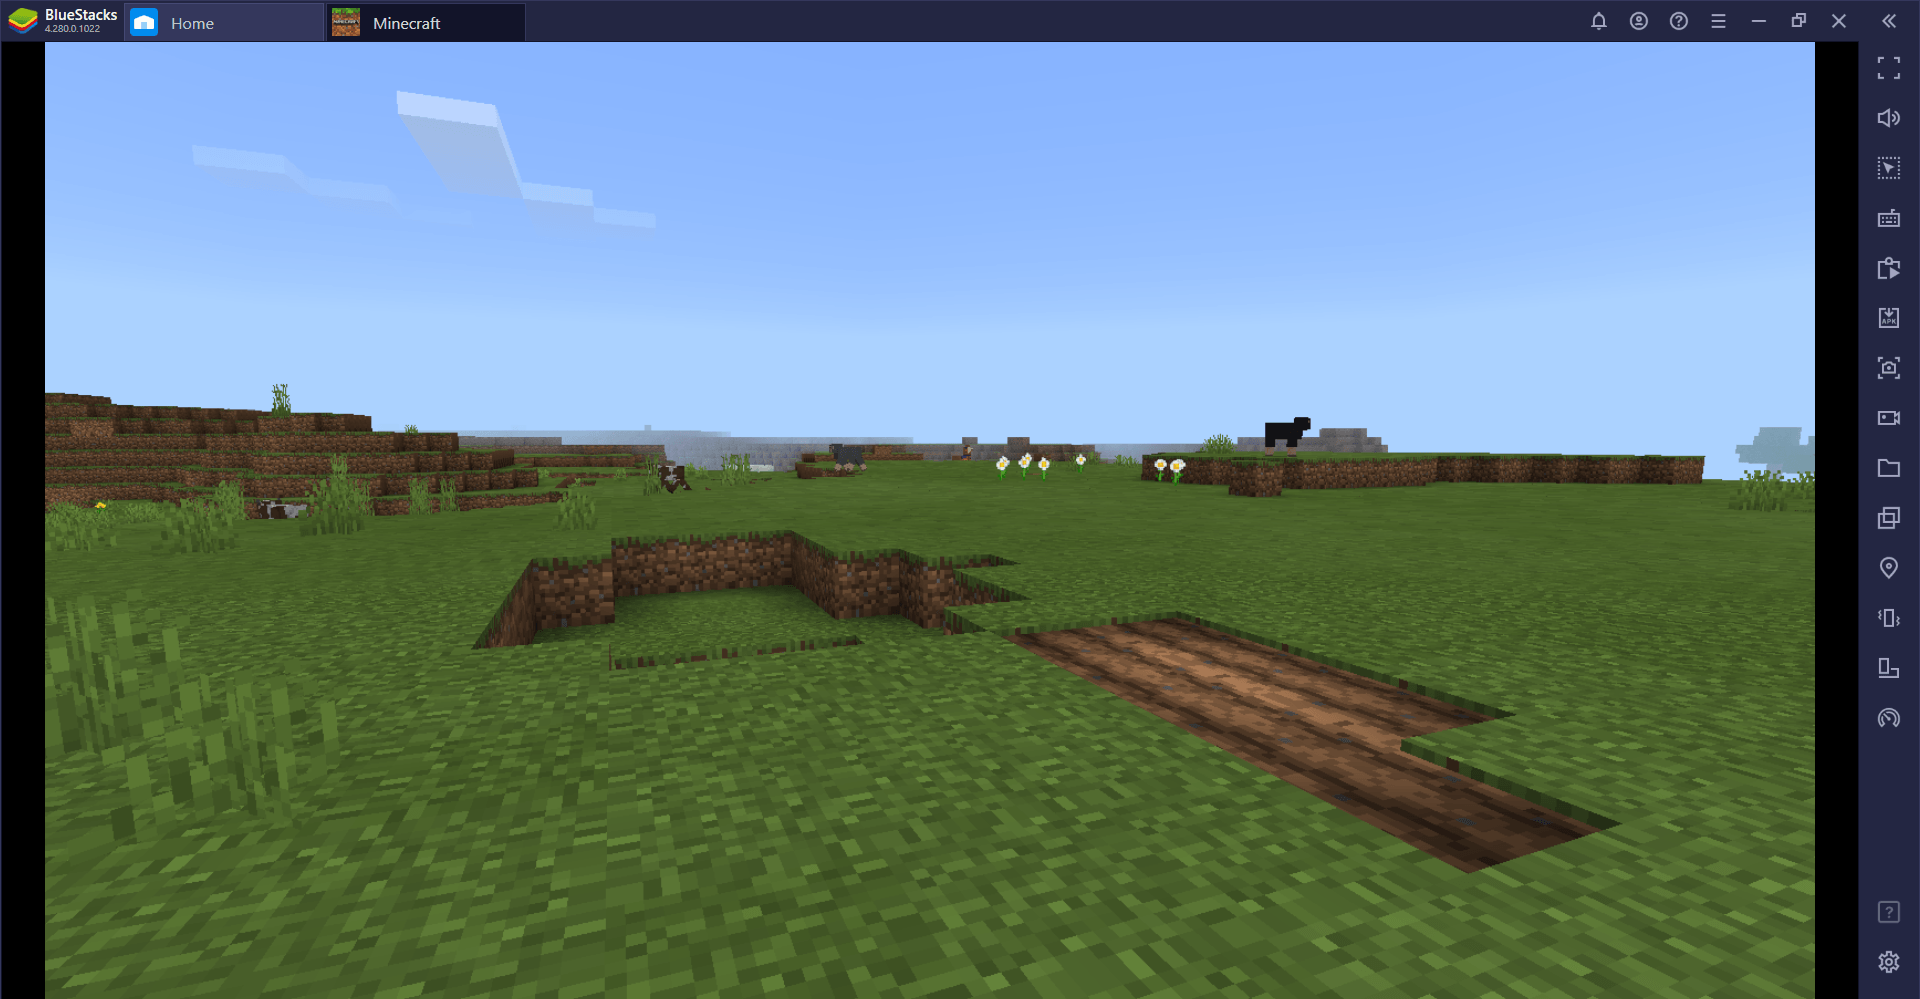 How to Play Minecraft on PC with Bluestacks